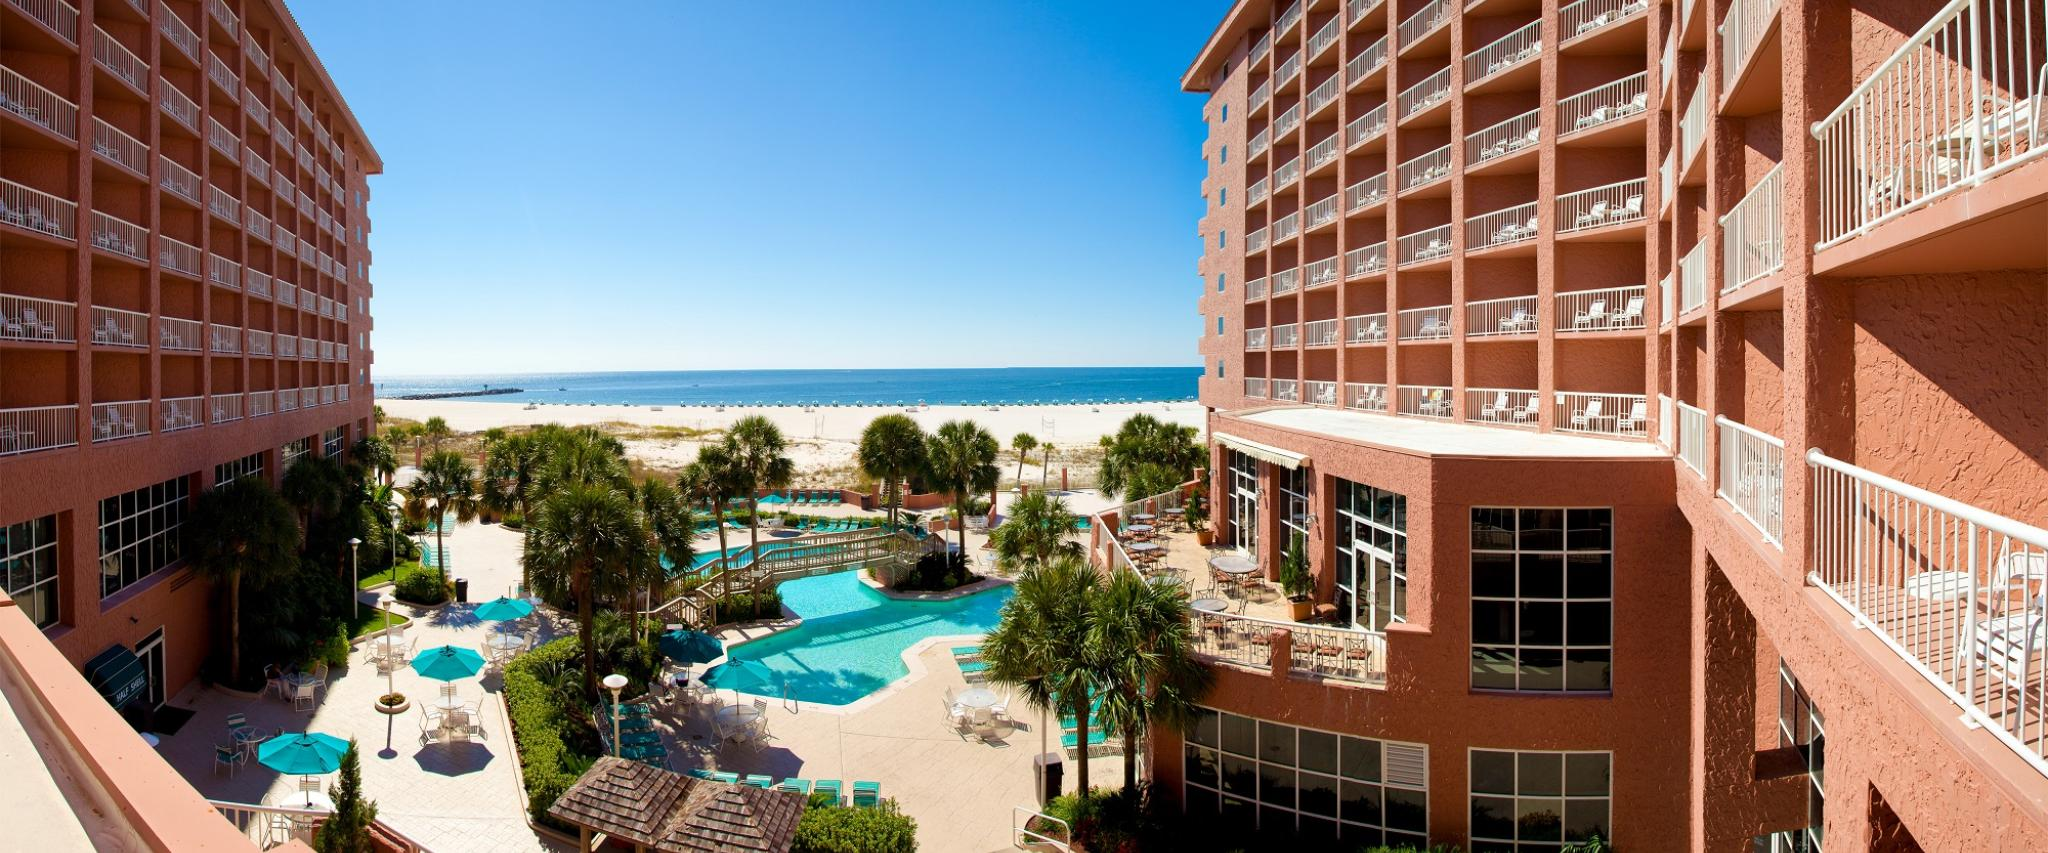 Top Resorts In Gulf Shores & Orange Beach 2019 Alabama